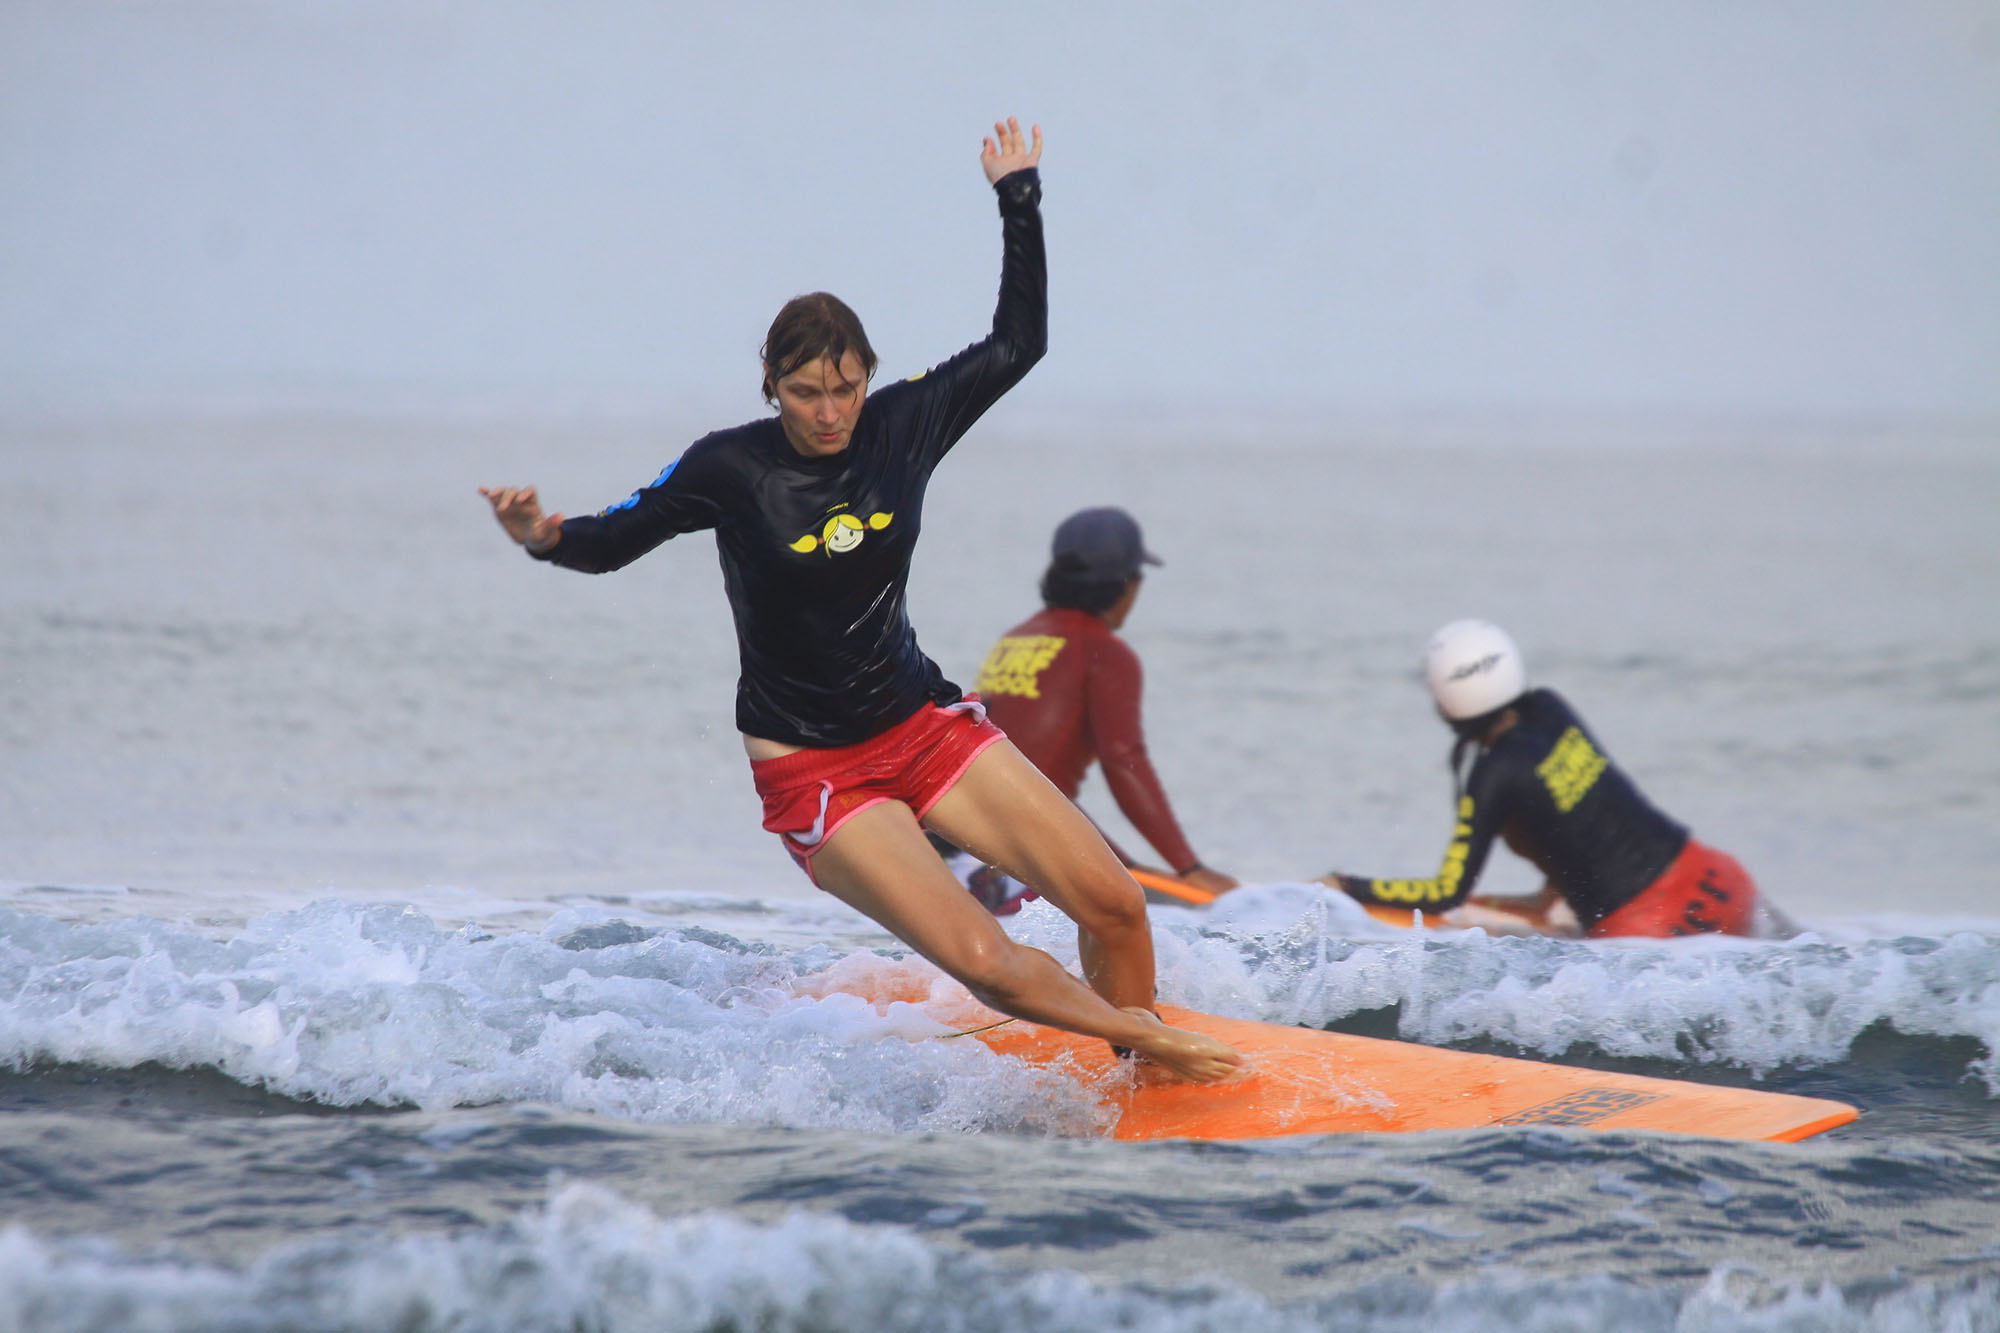 Beginner surfing lesson in Kuta, Bali